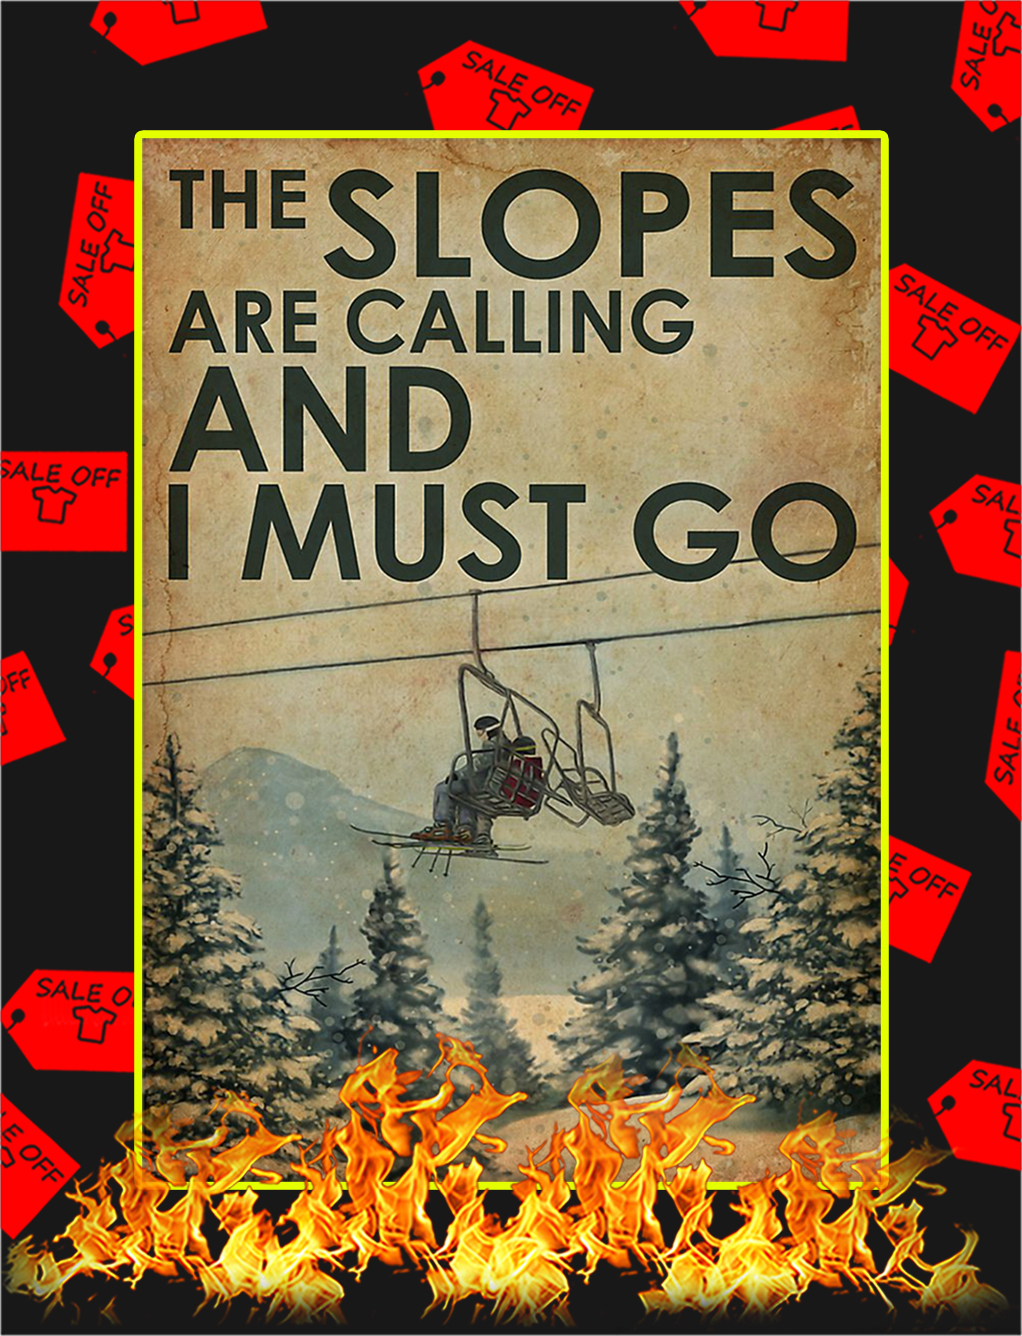 The Slopes Are Calling And I Must Go Poster - A3